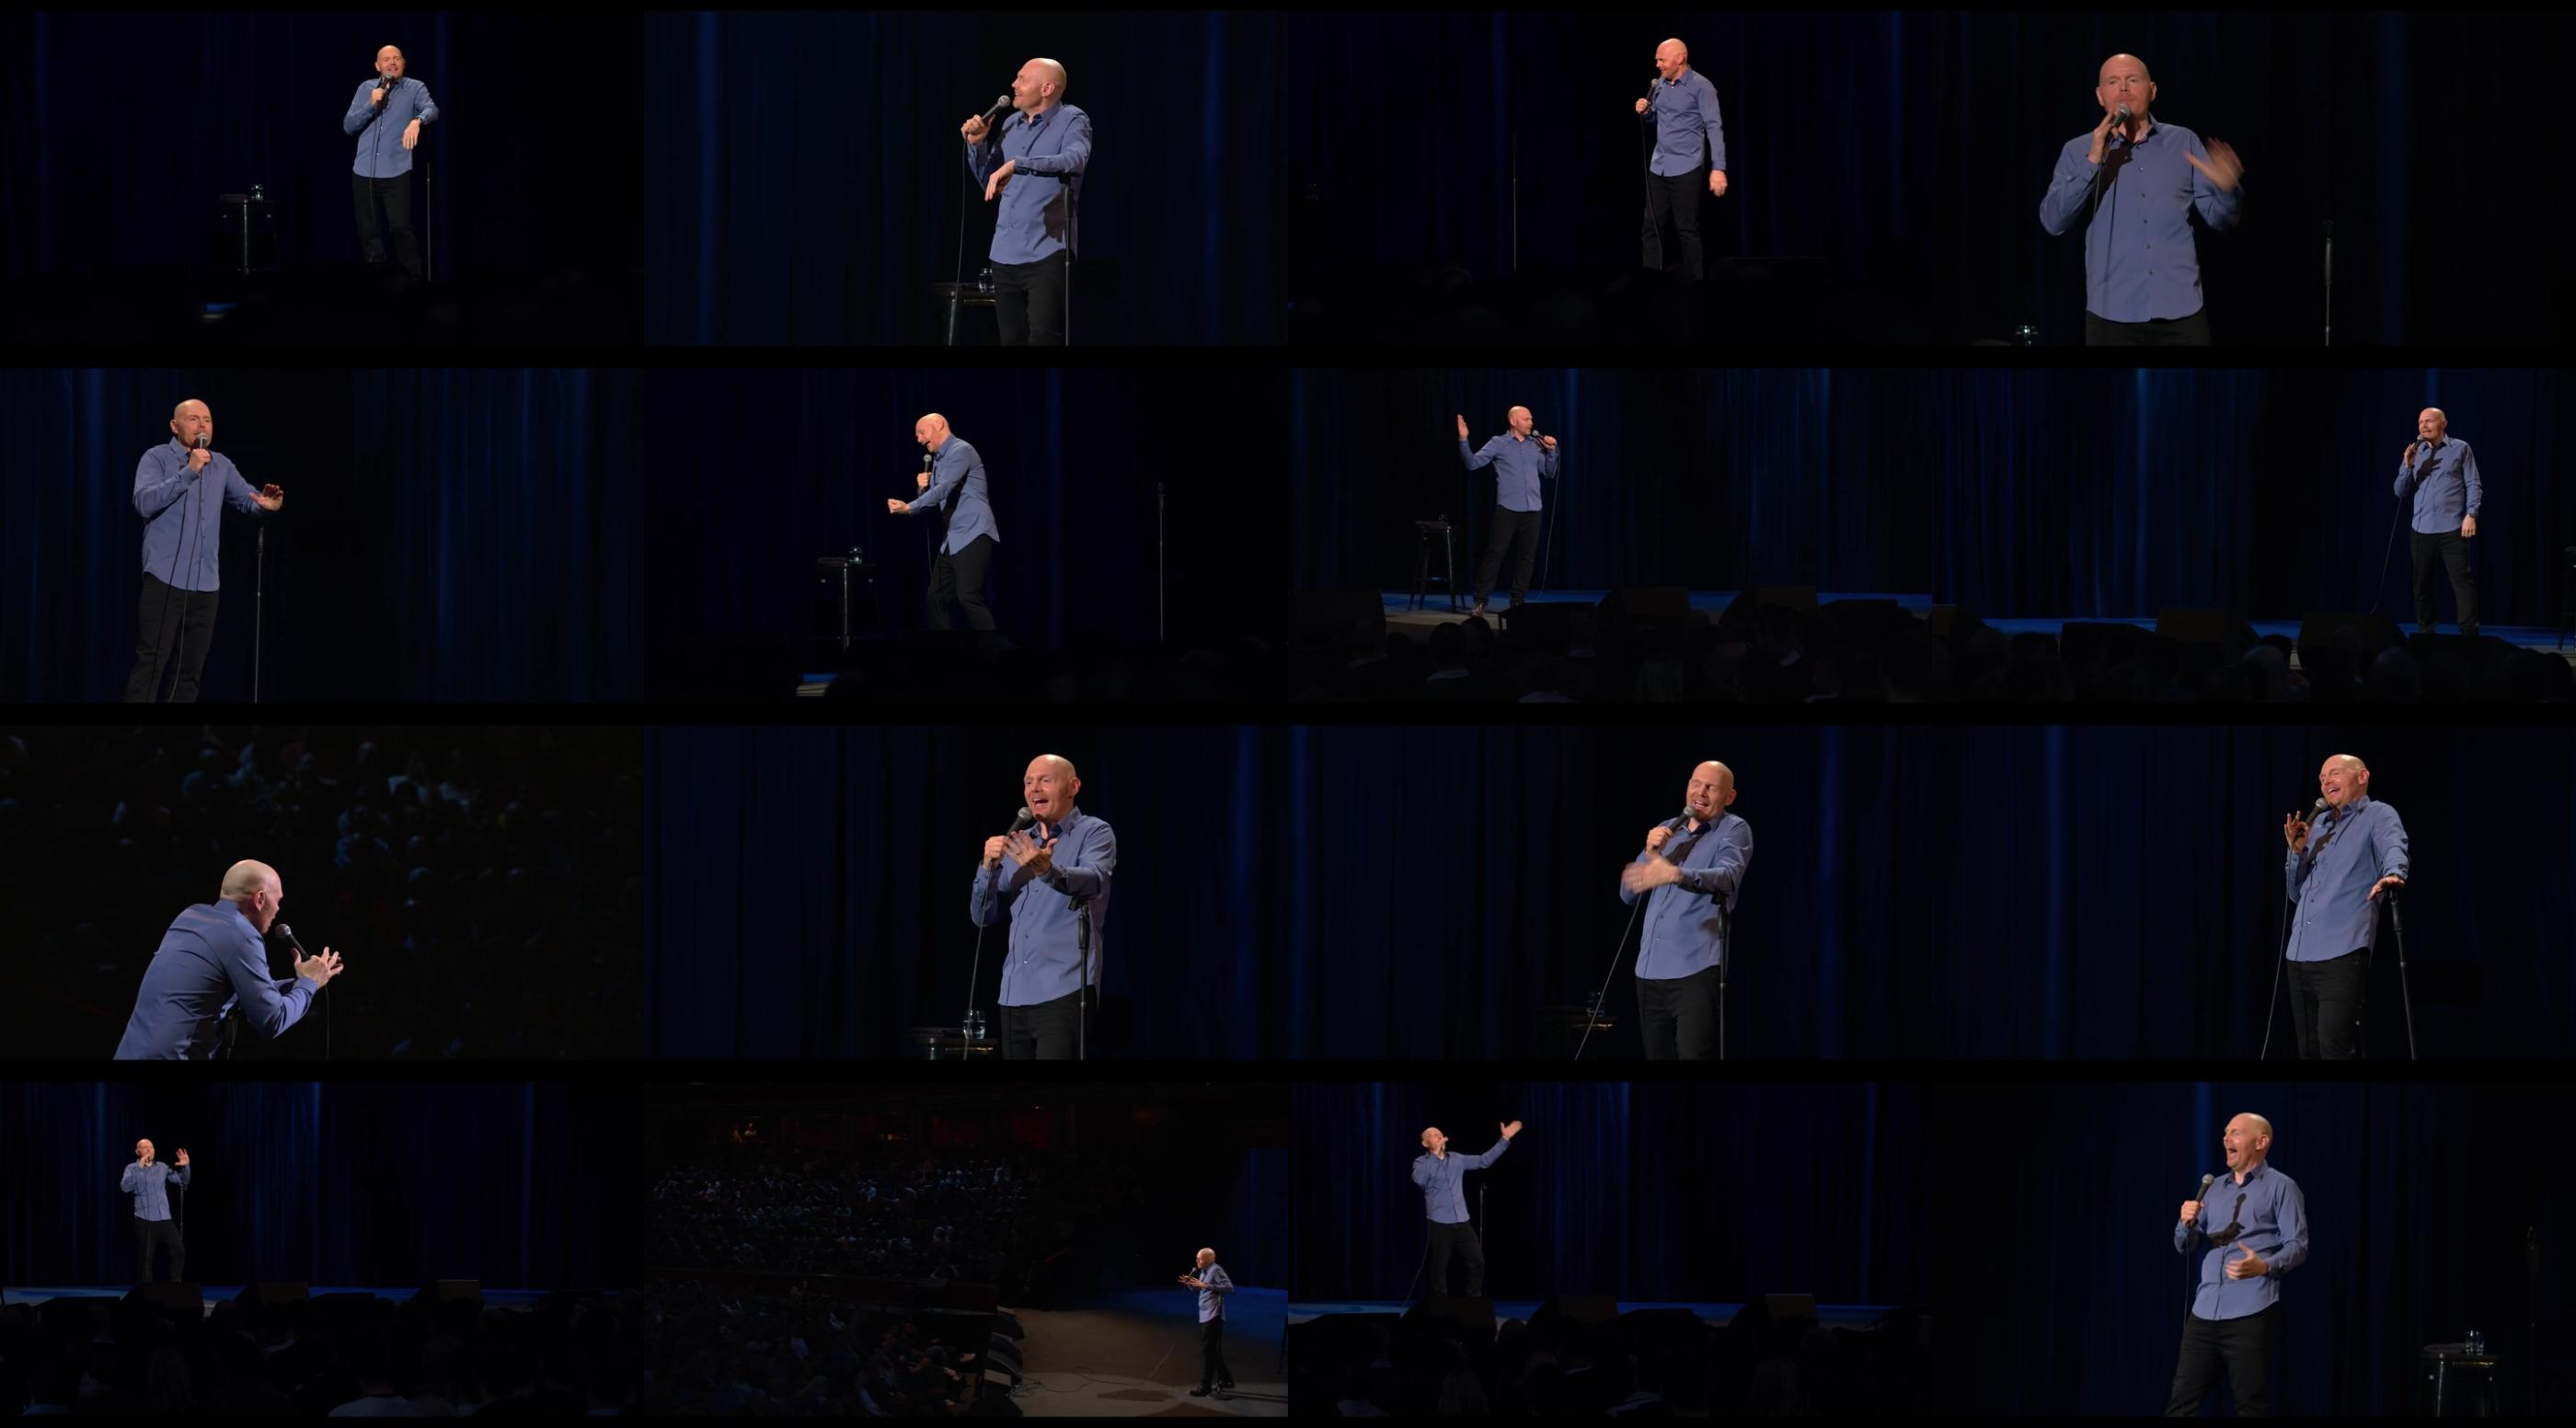 Bill Burr Paper Tiger 2019 WEBRip x264 ION10